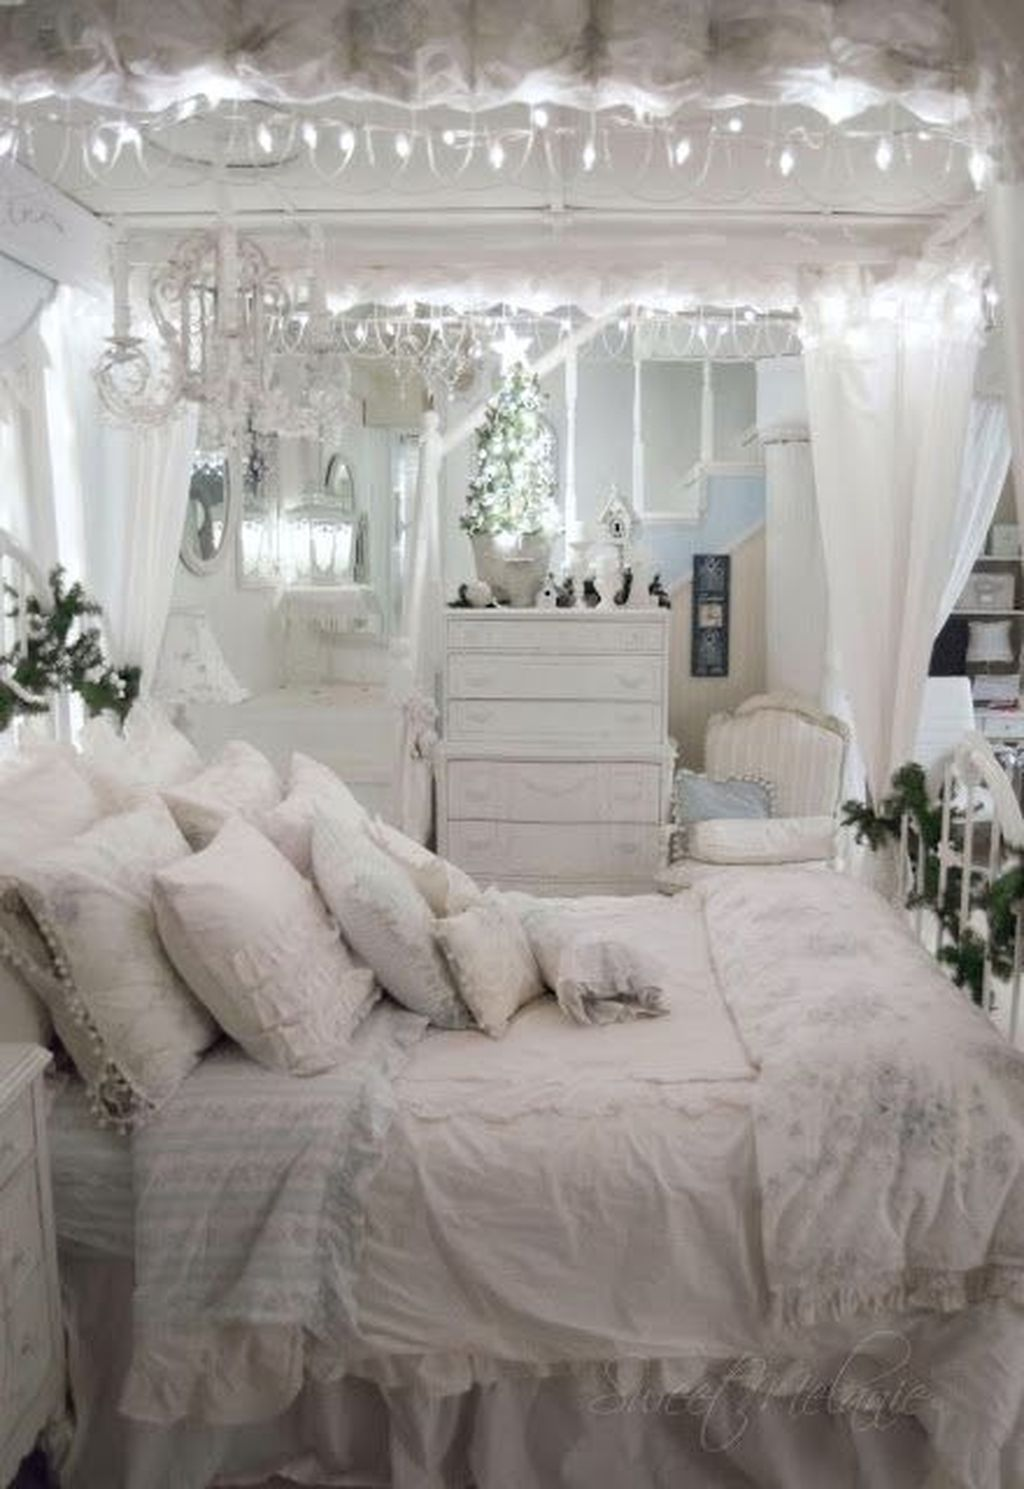 Schlafzimmer Set Shabby Top 10 Lovely Design Kids Bedroom Sets Under 500 Ideas